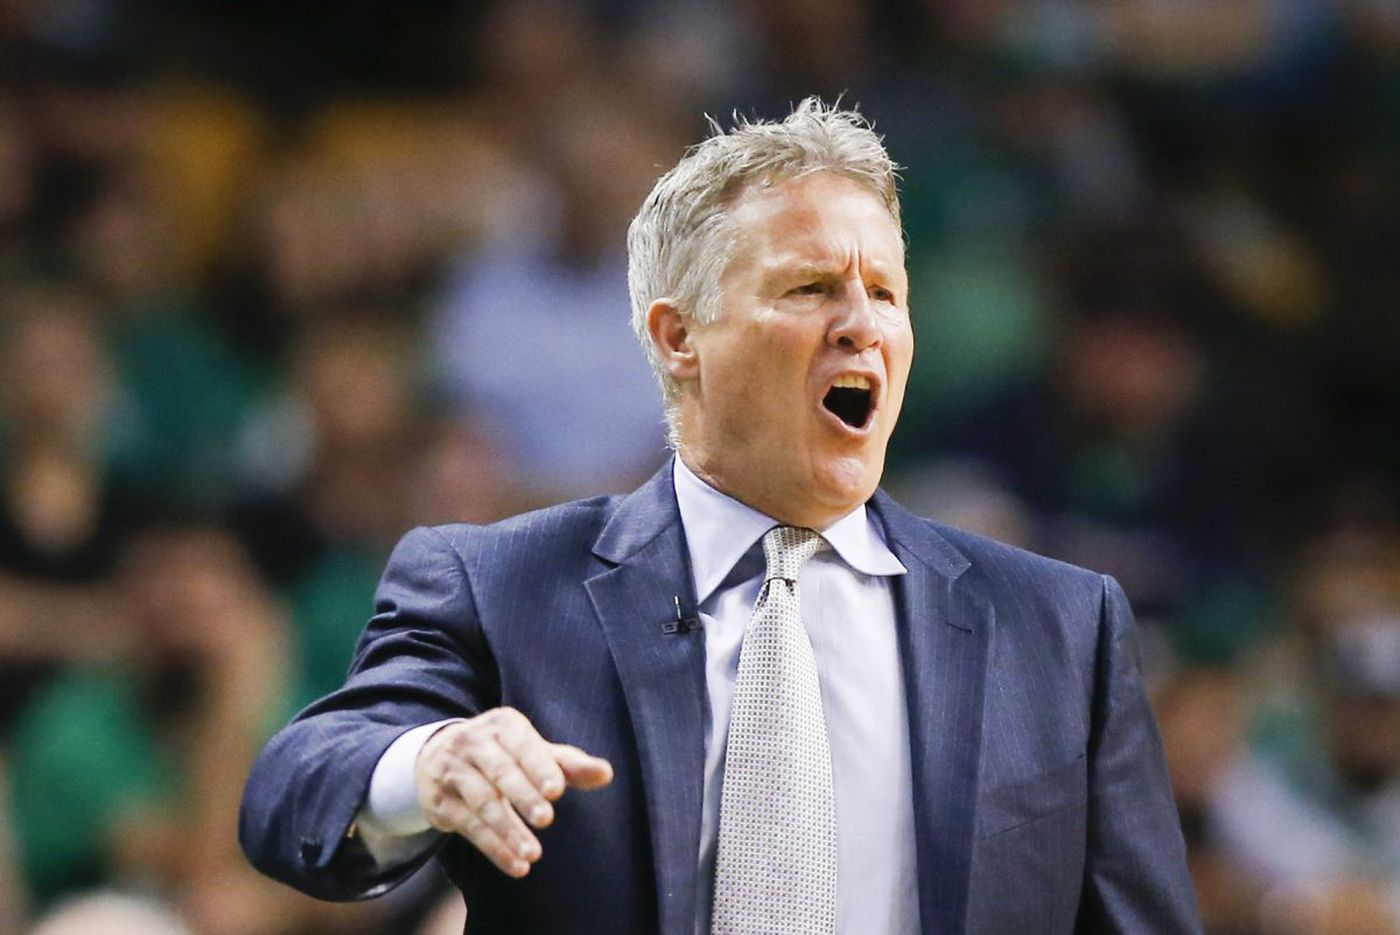 Given time to reflect, Sixers coach Brett Brown might have called time during Boston's second quarter run